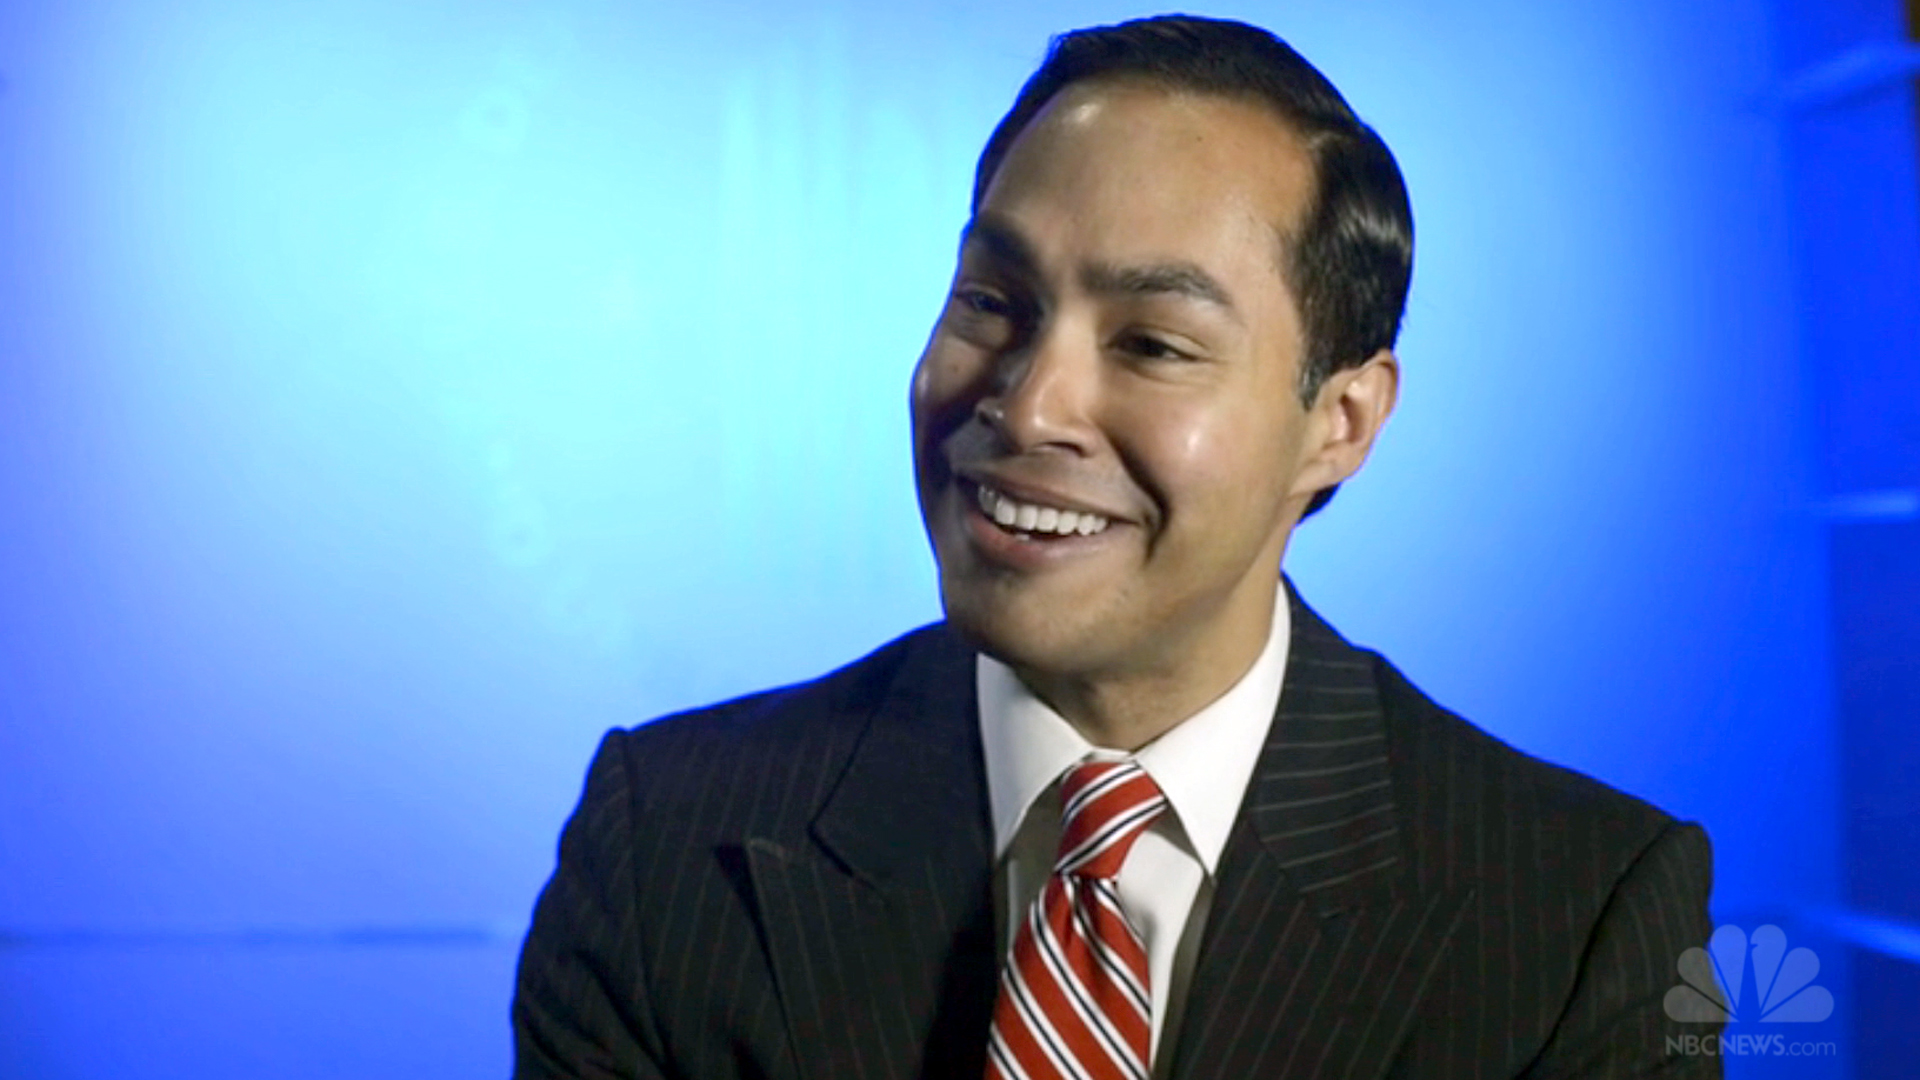 renewing home buying confidence has framed julián castro's year at